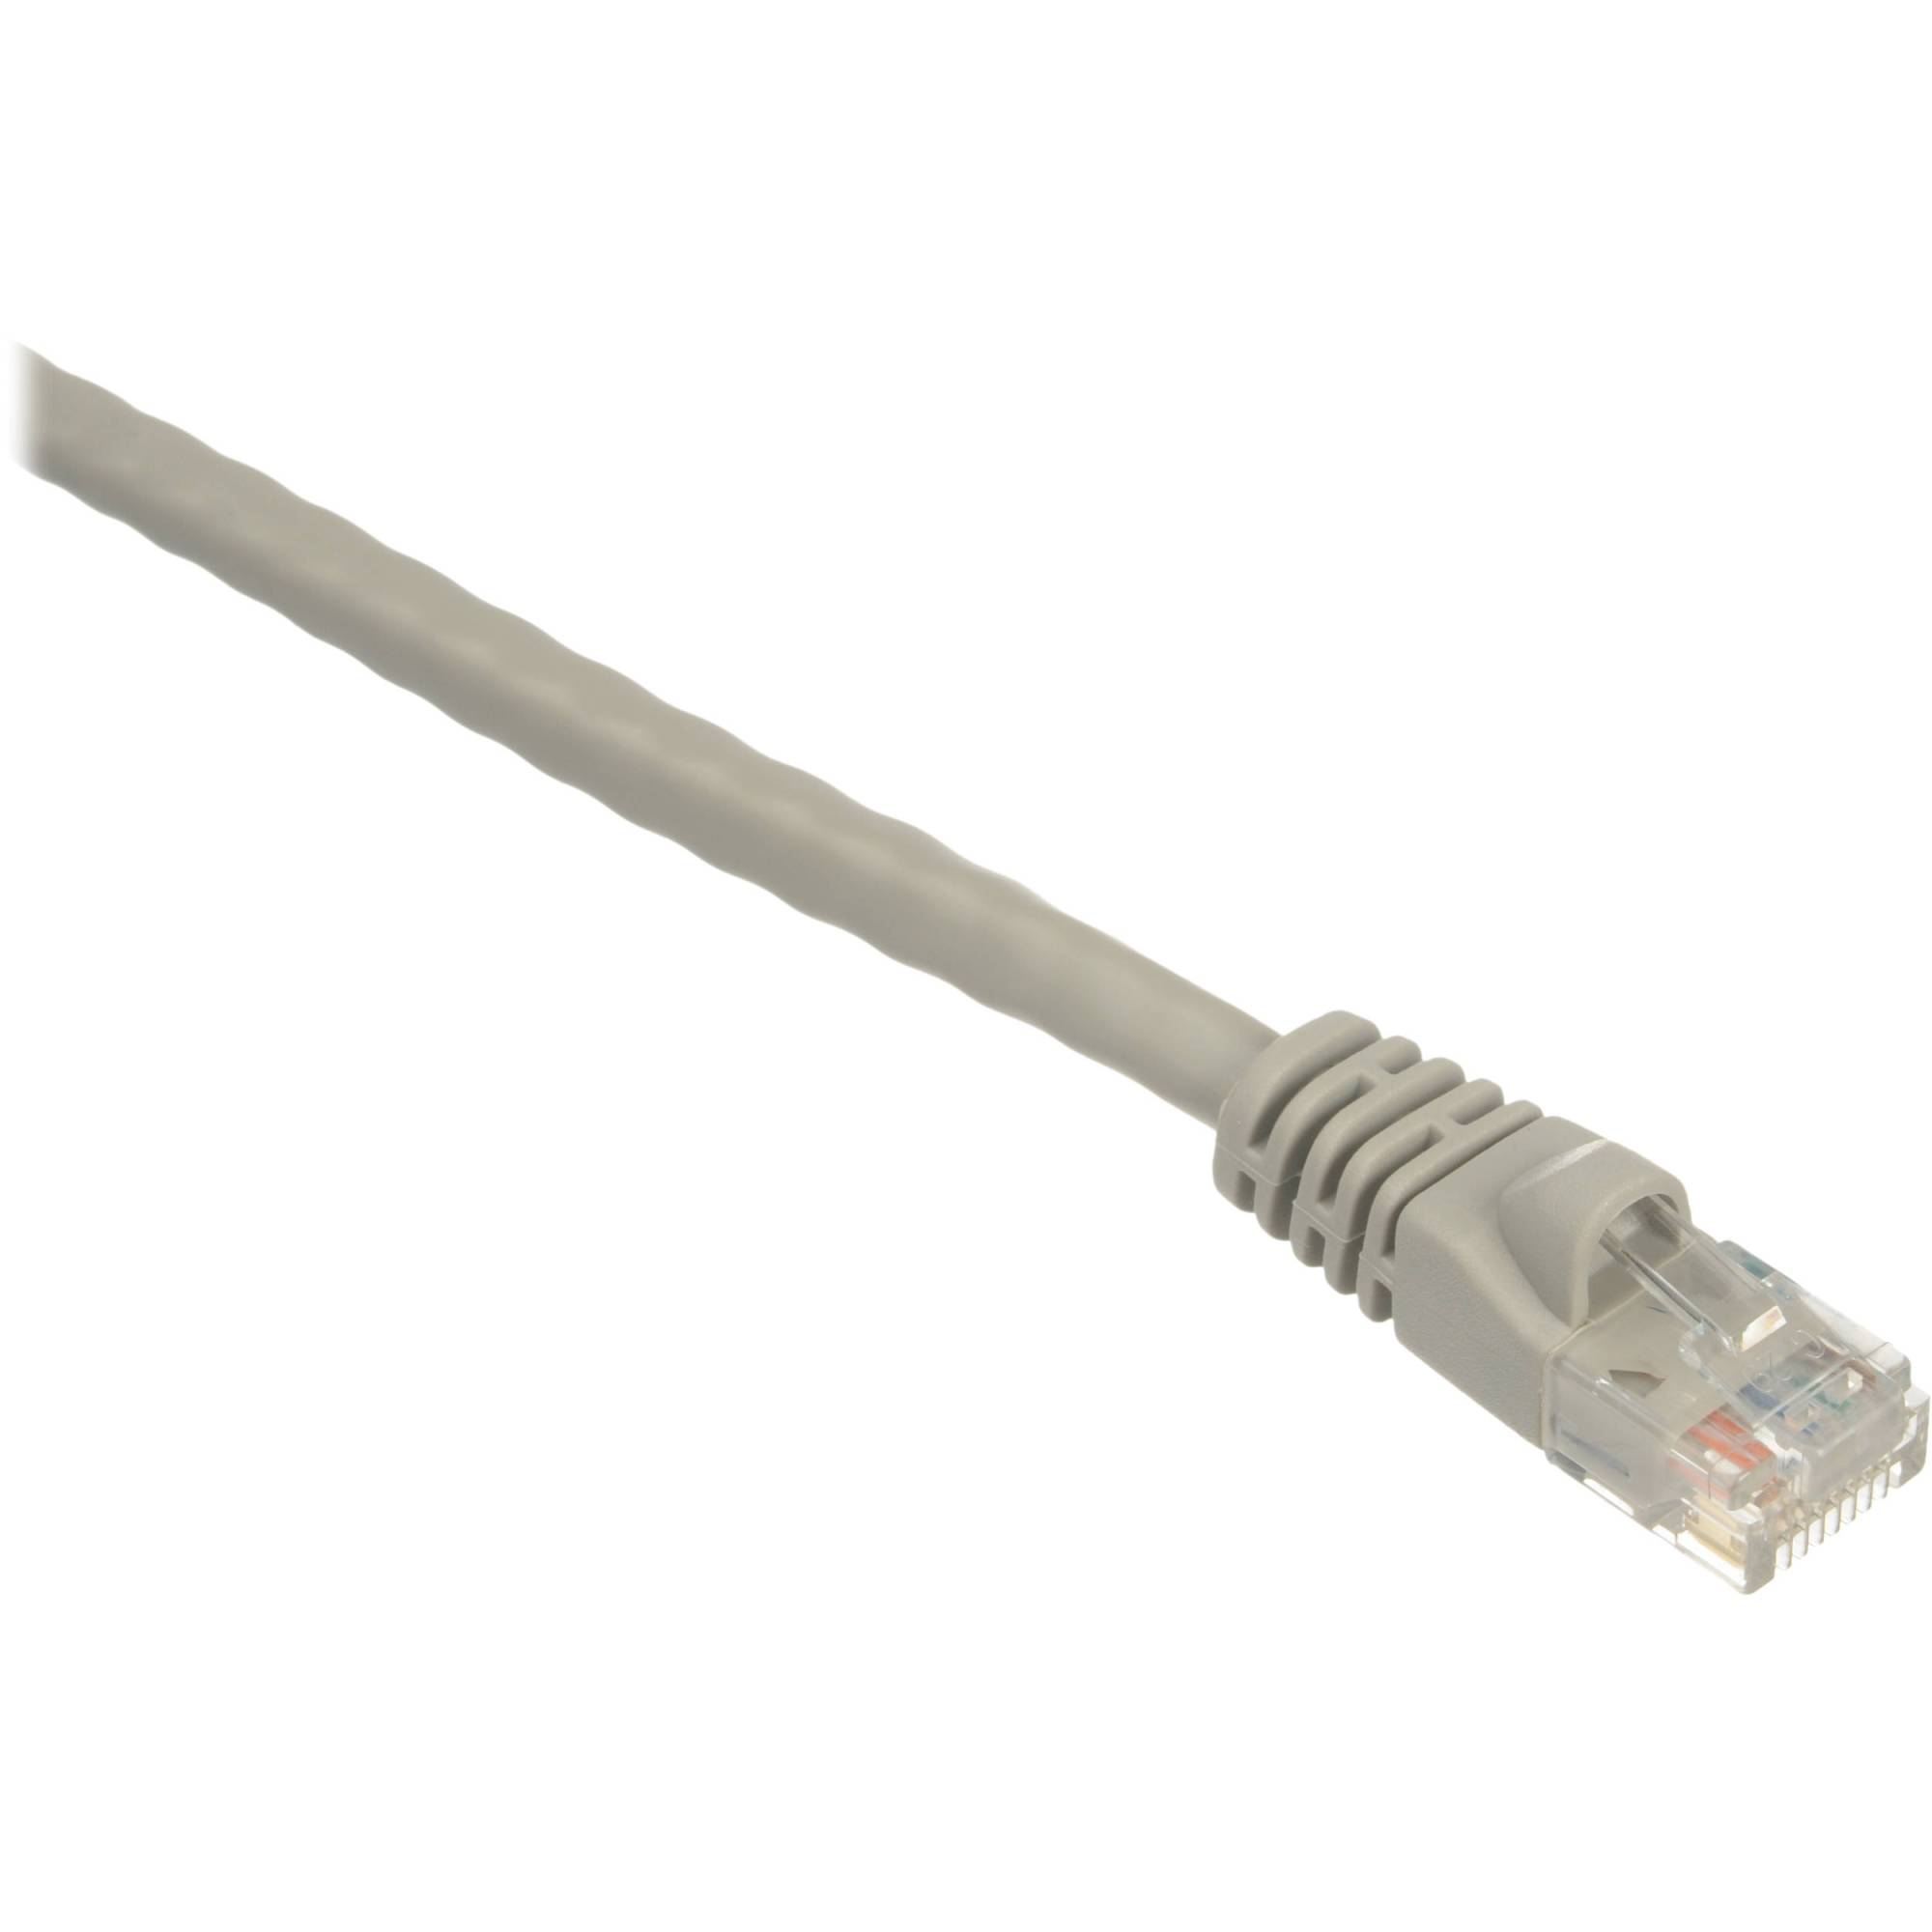 hight resolution of comprehensive 7 2 1 m cat6 550mhz snagless patch cable